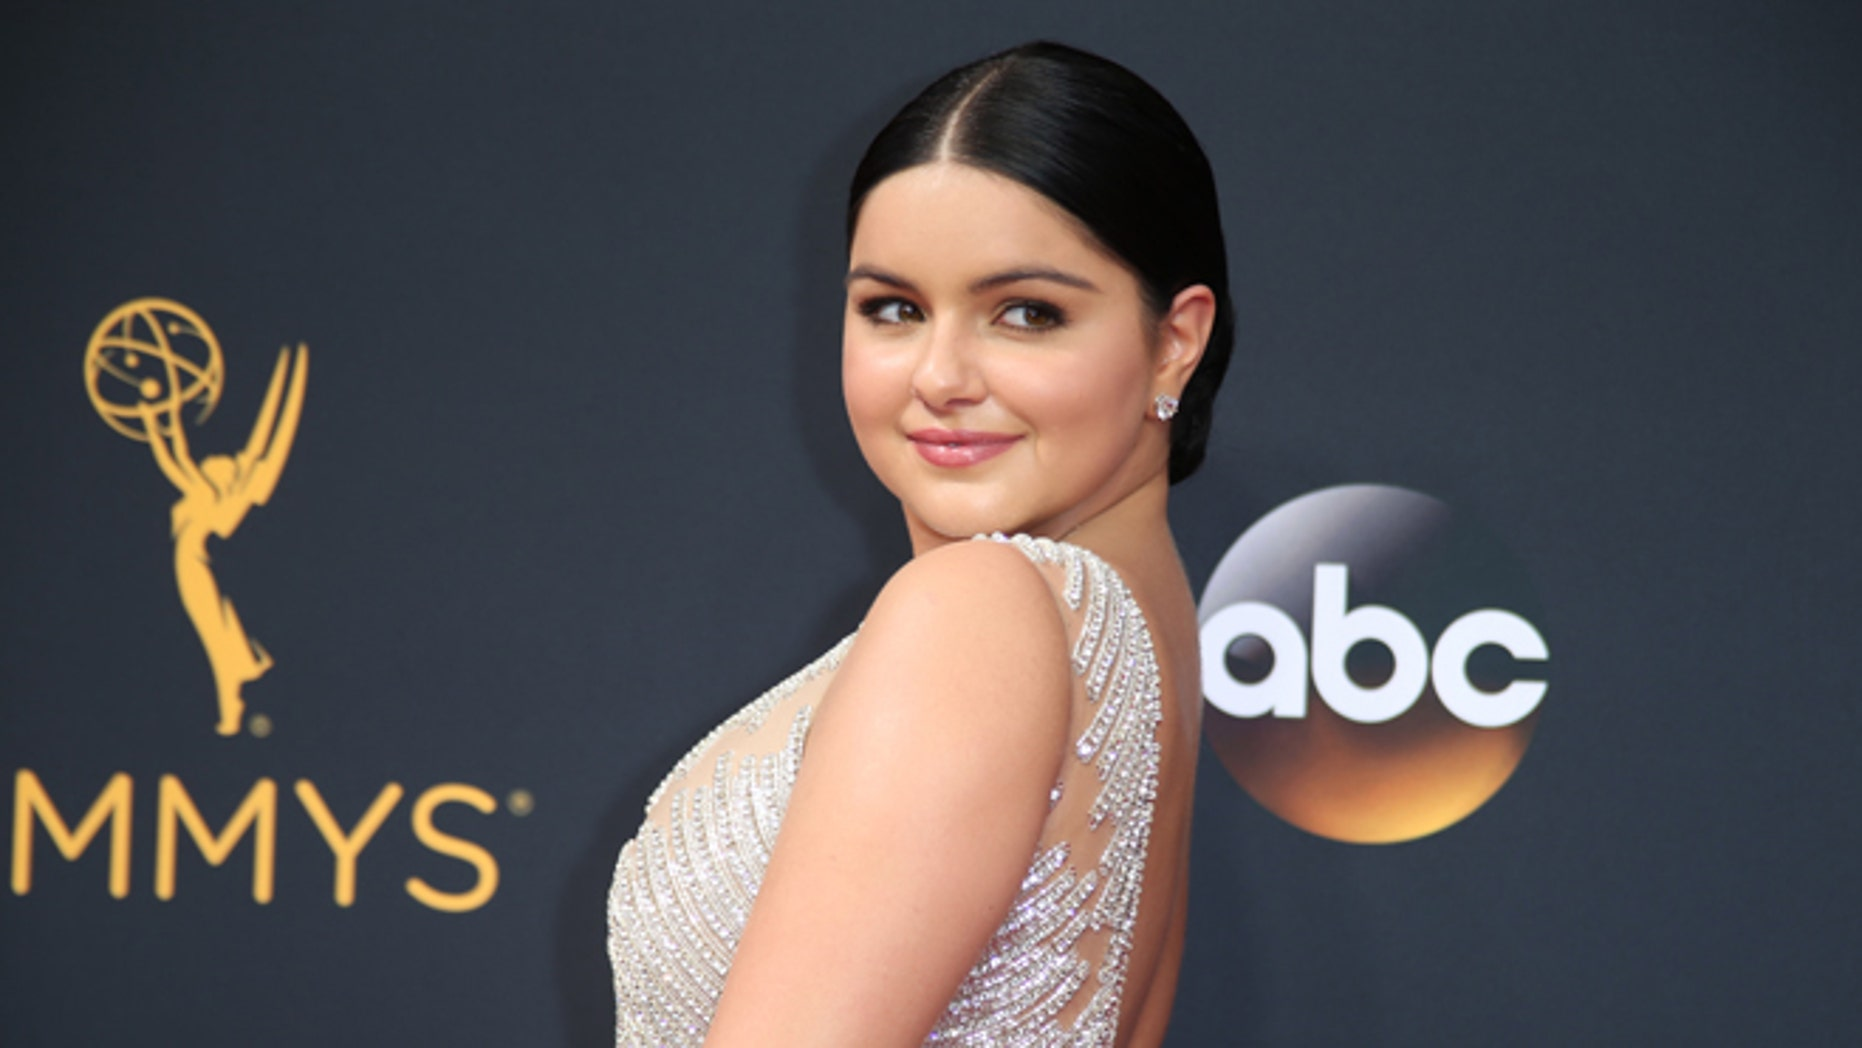 Ariel Winter posted a cheeky snap from her vacation.